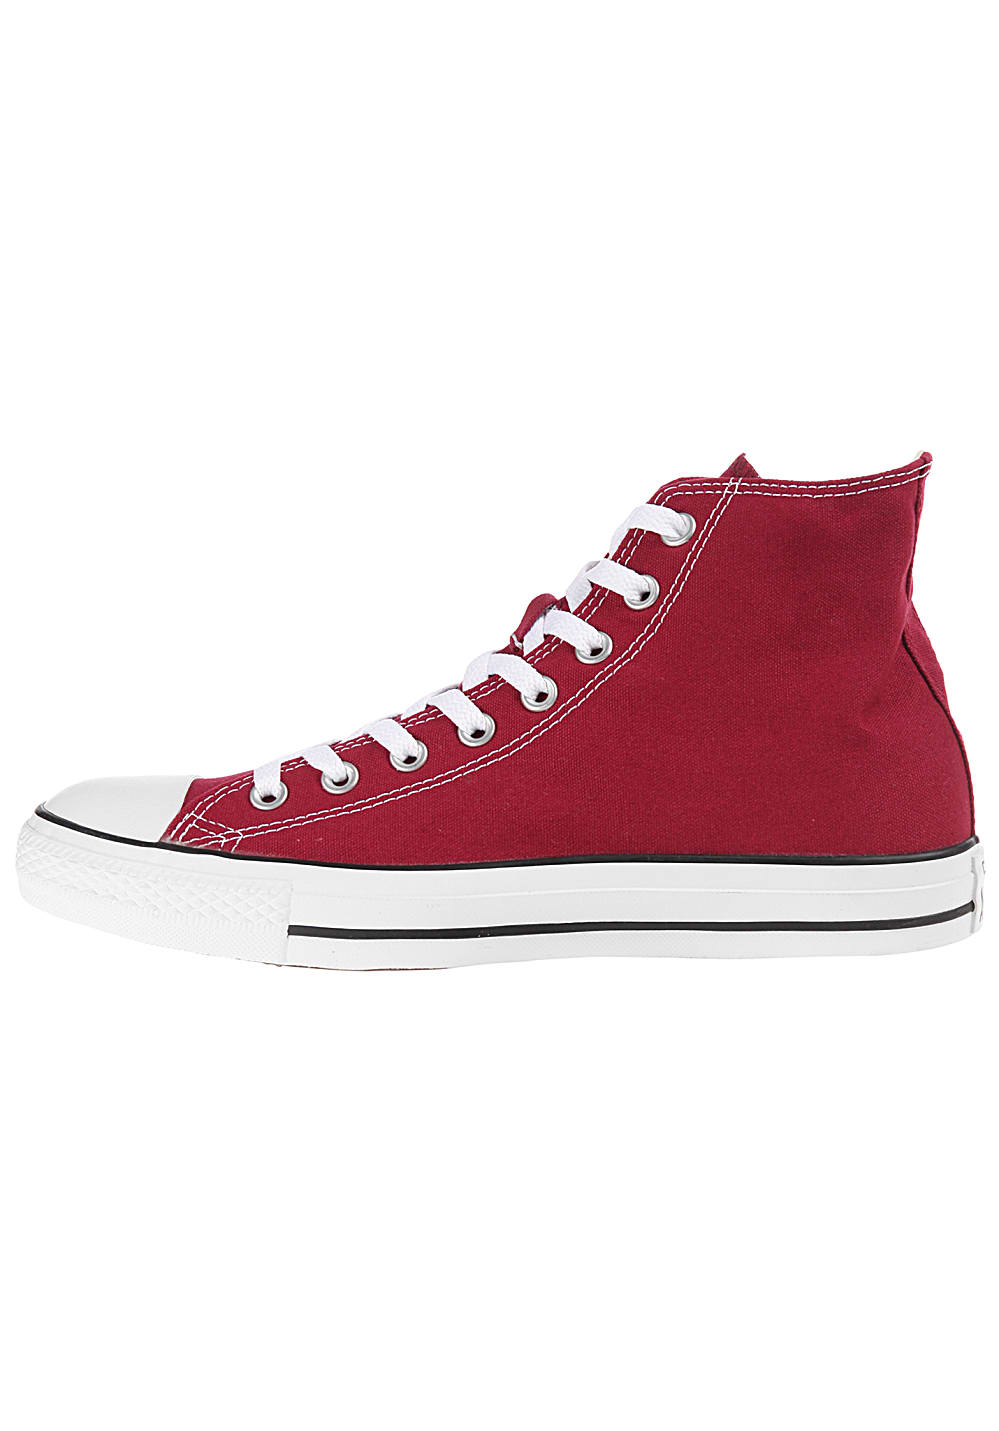 Converse All Star Hi - Sneaker - Rot - Planet Sports